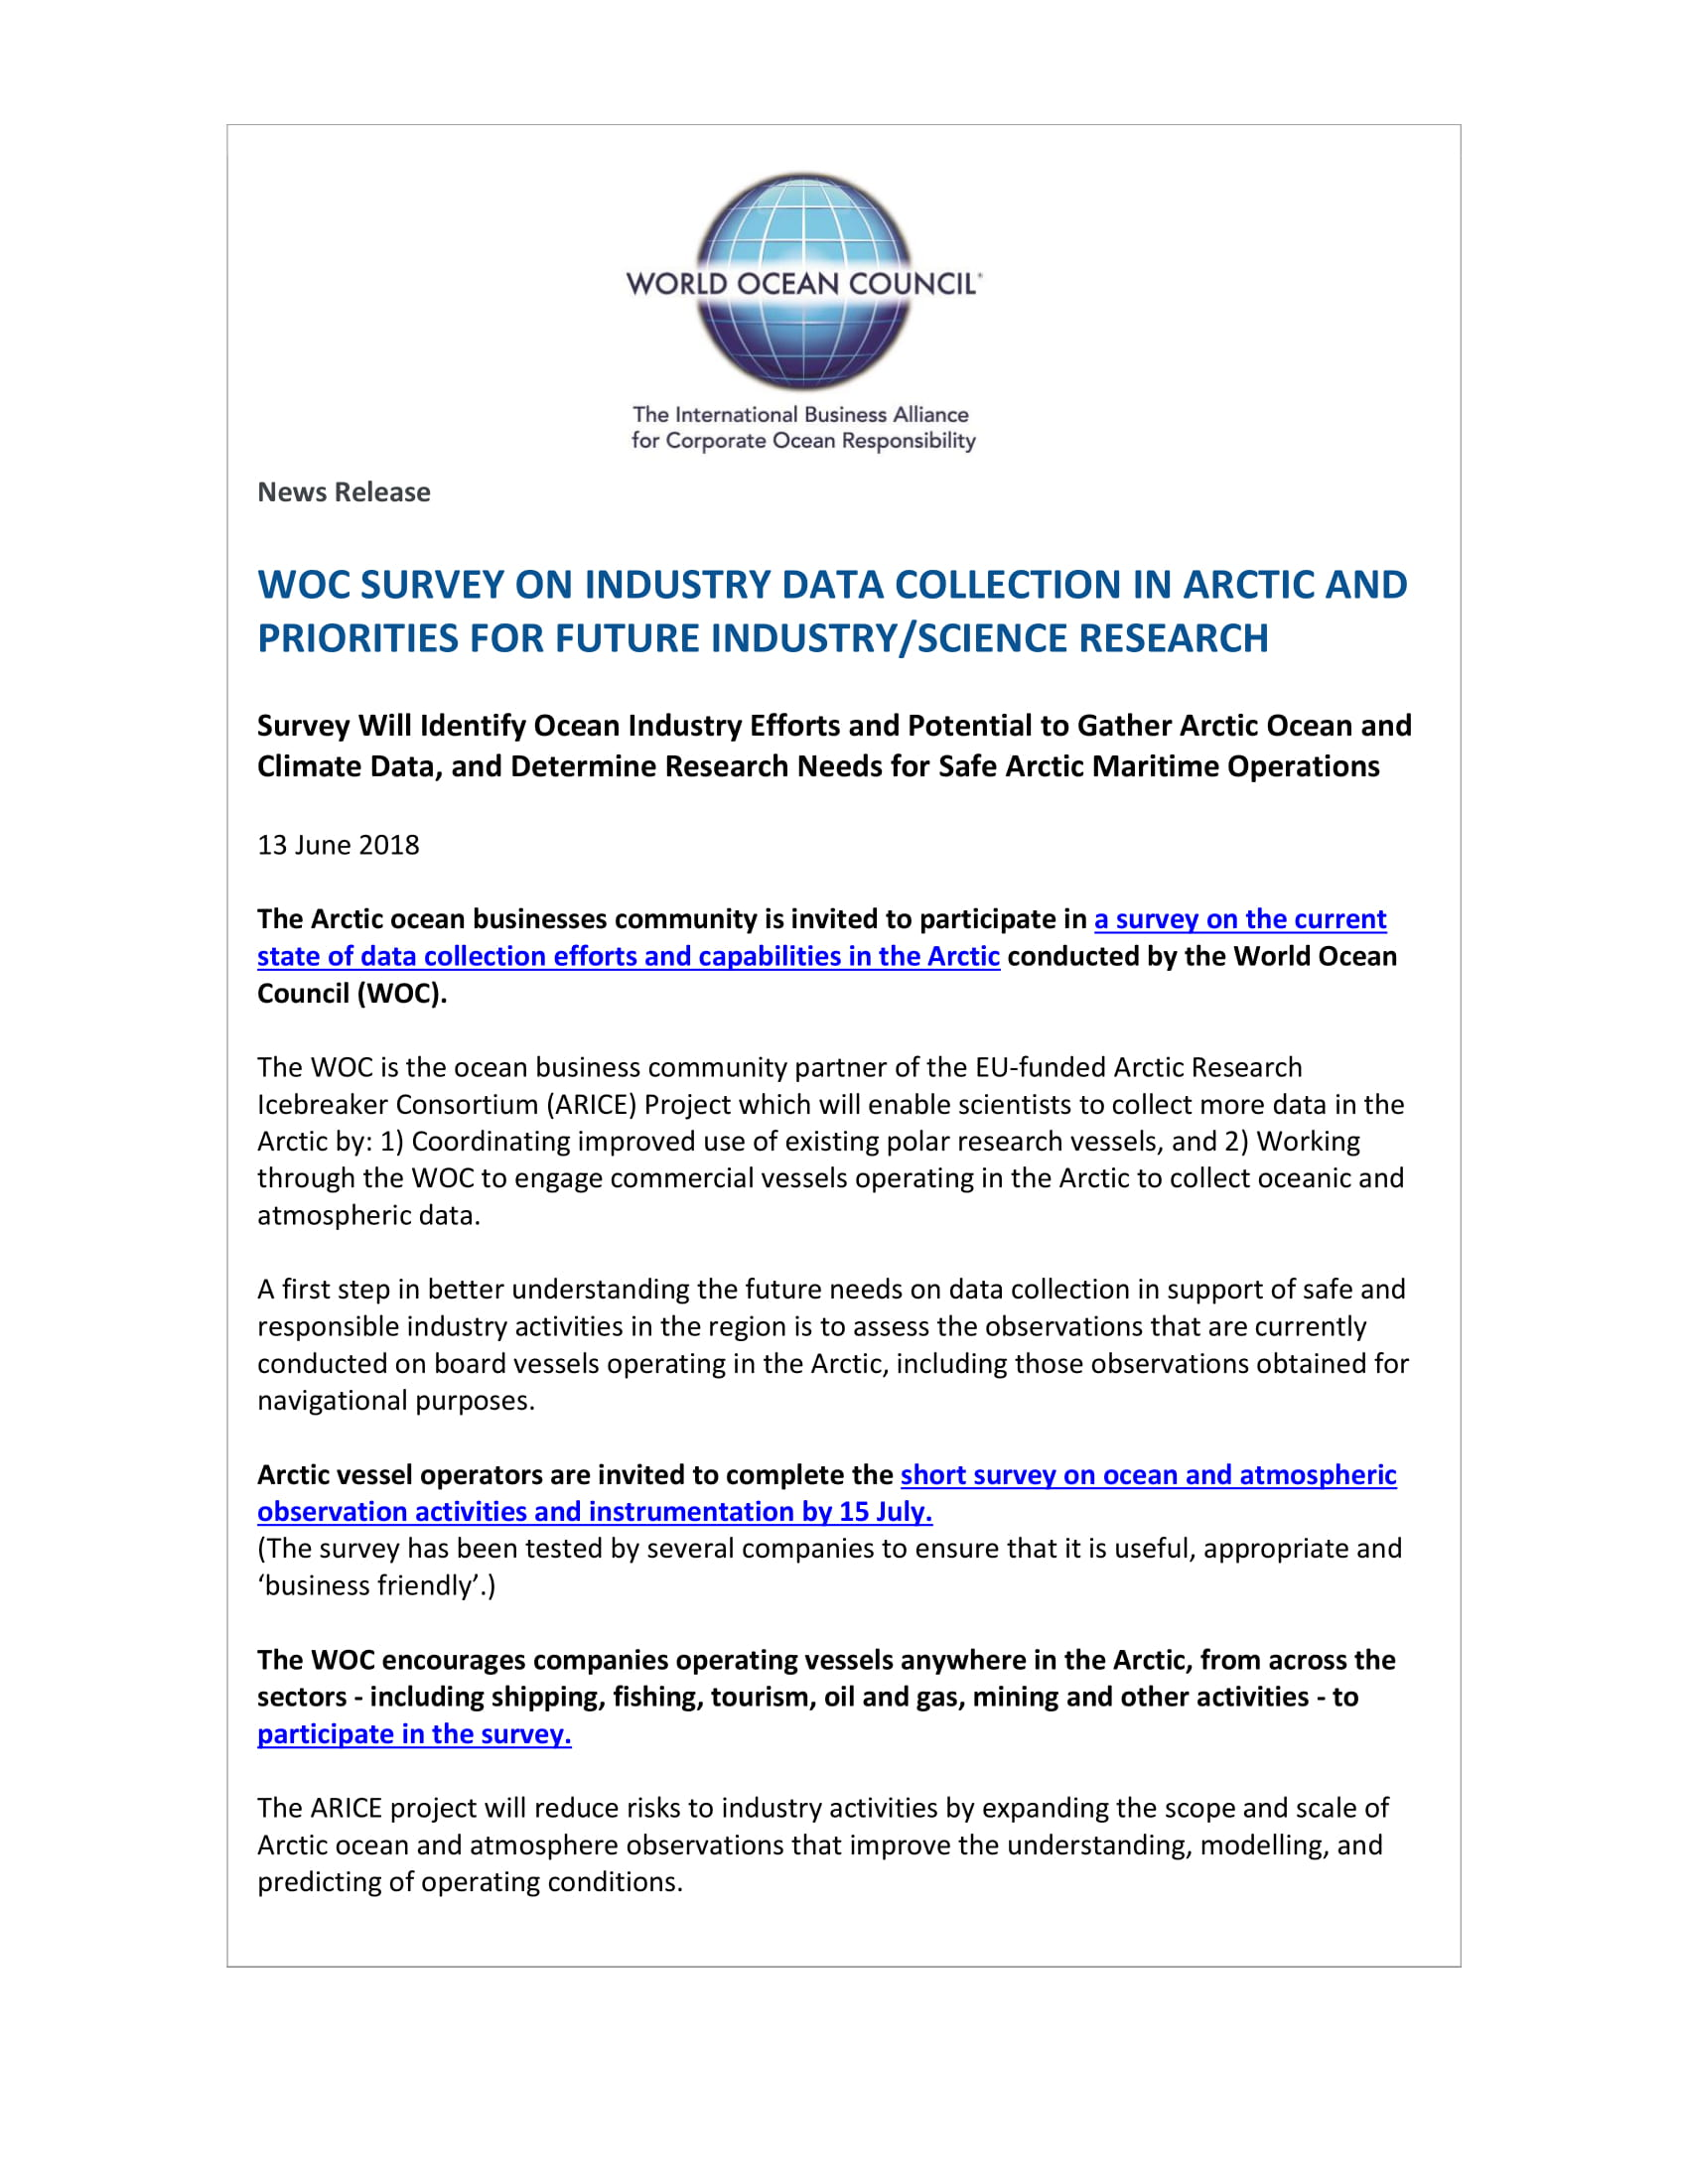 Woc launches arctic industry survey on data collection 13 june woc launches arctic industry survey on data collection 13 june 2018 publicscrutiny Images